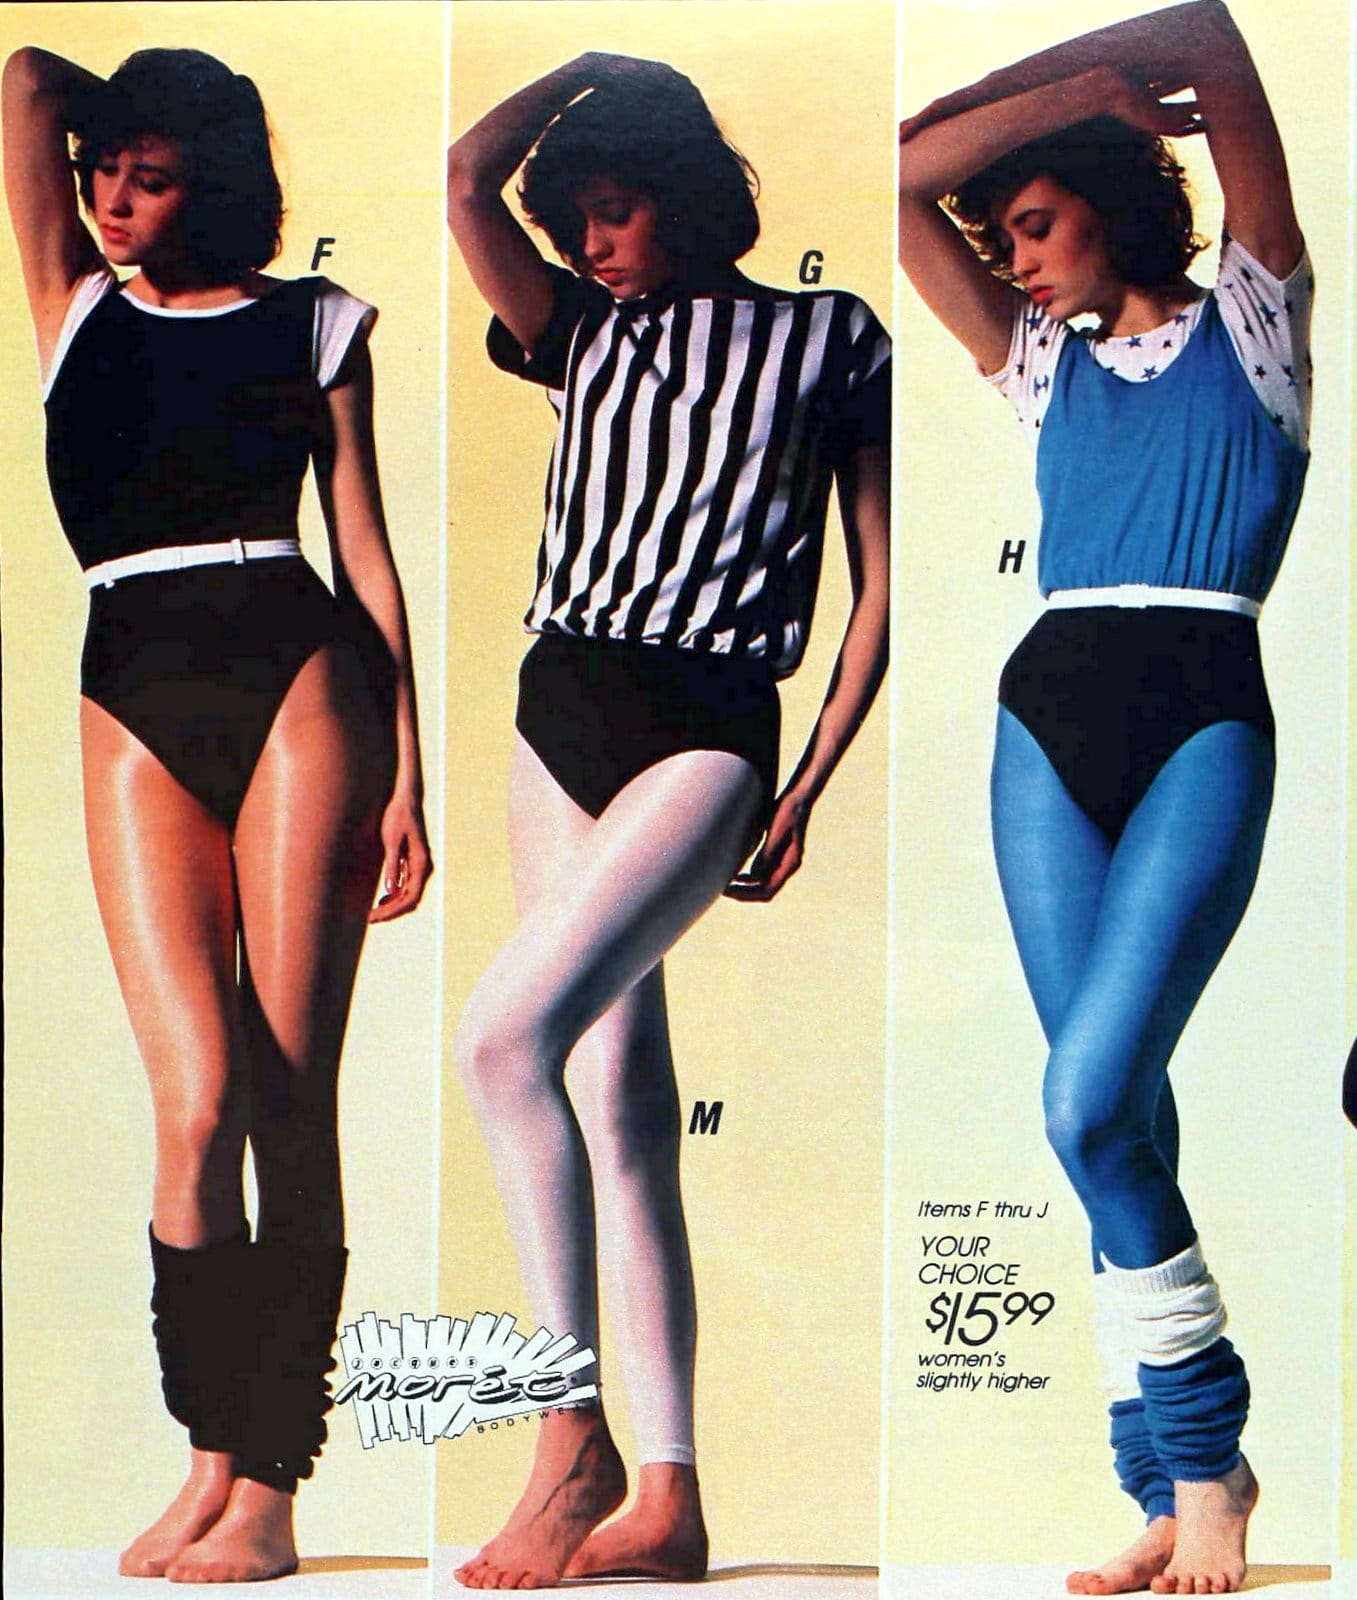 Moody 1980s girls wearing leotards and leg warmers